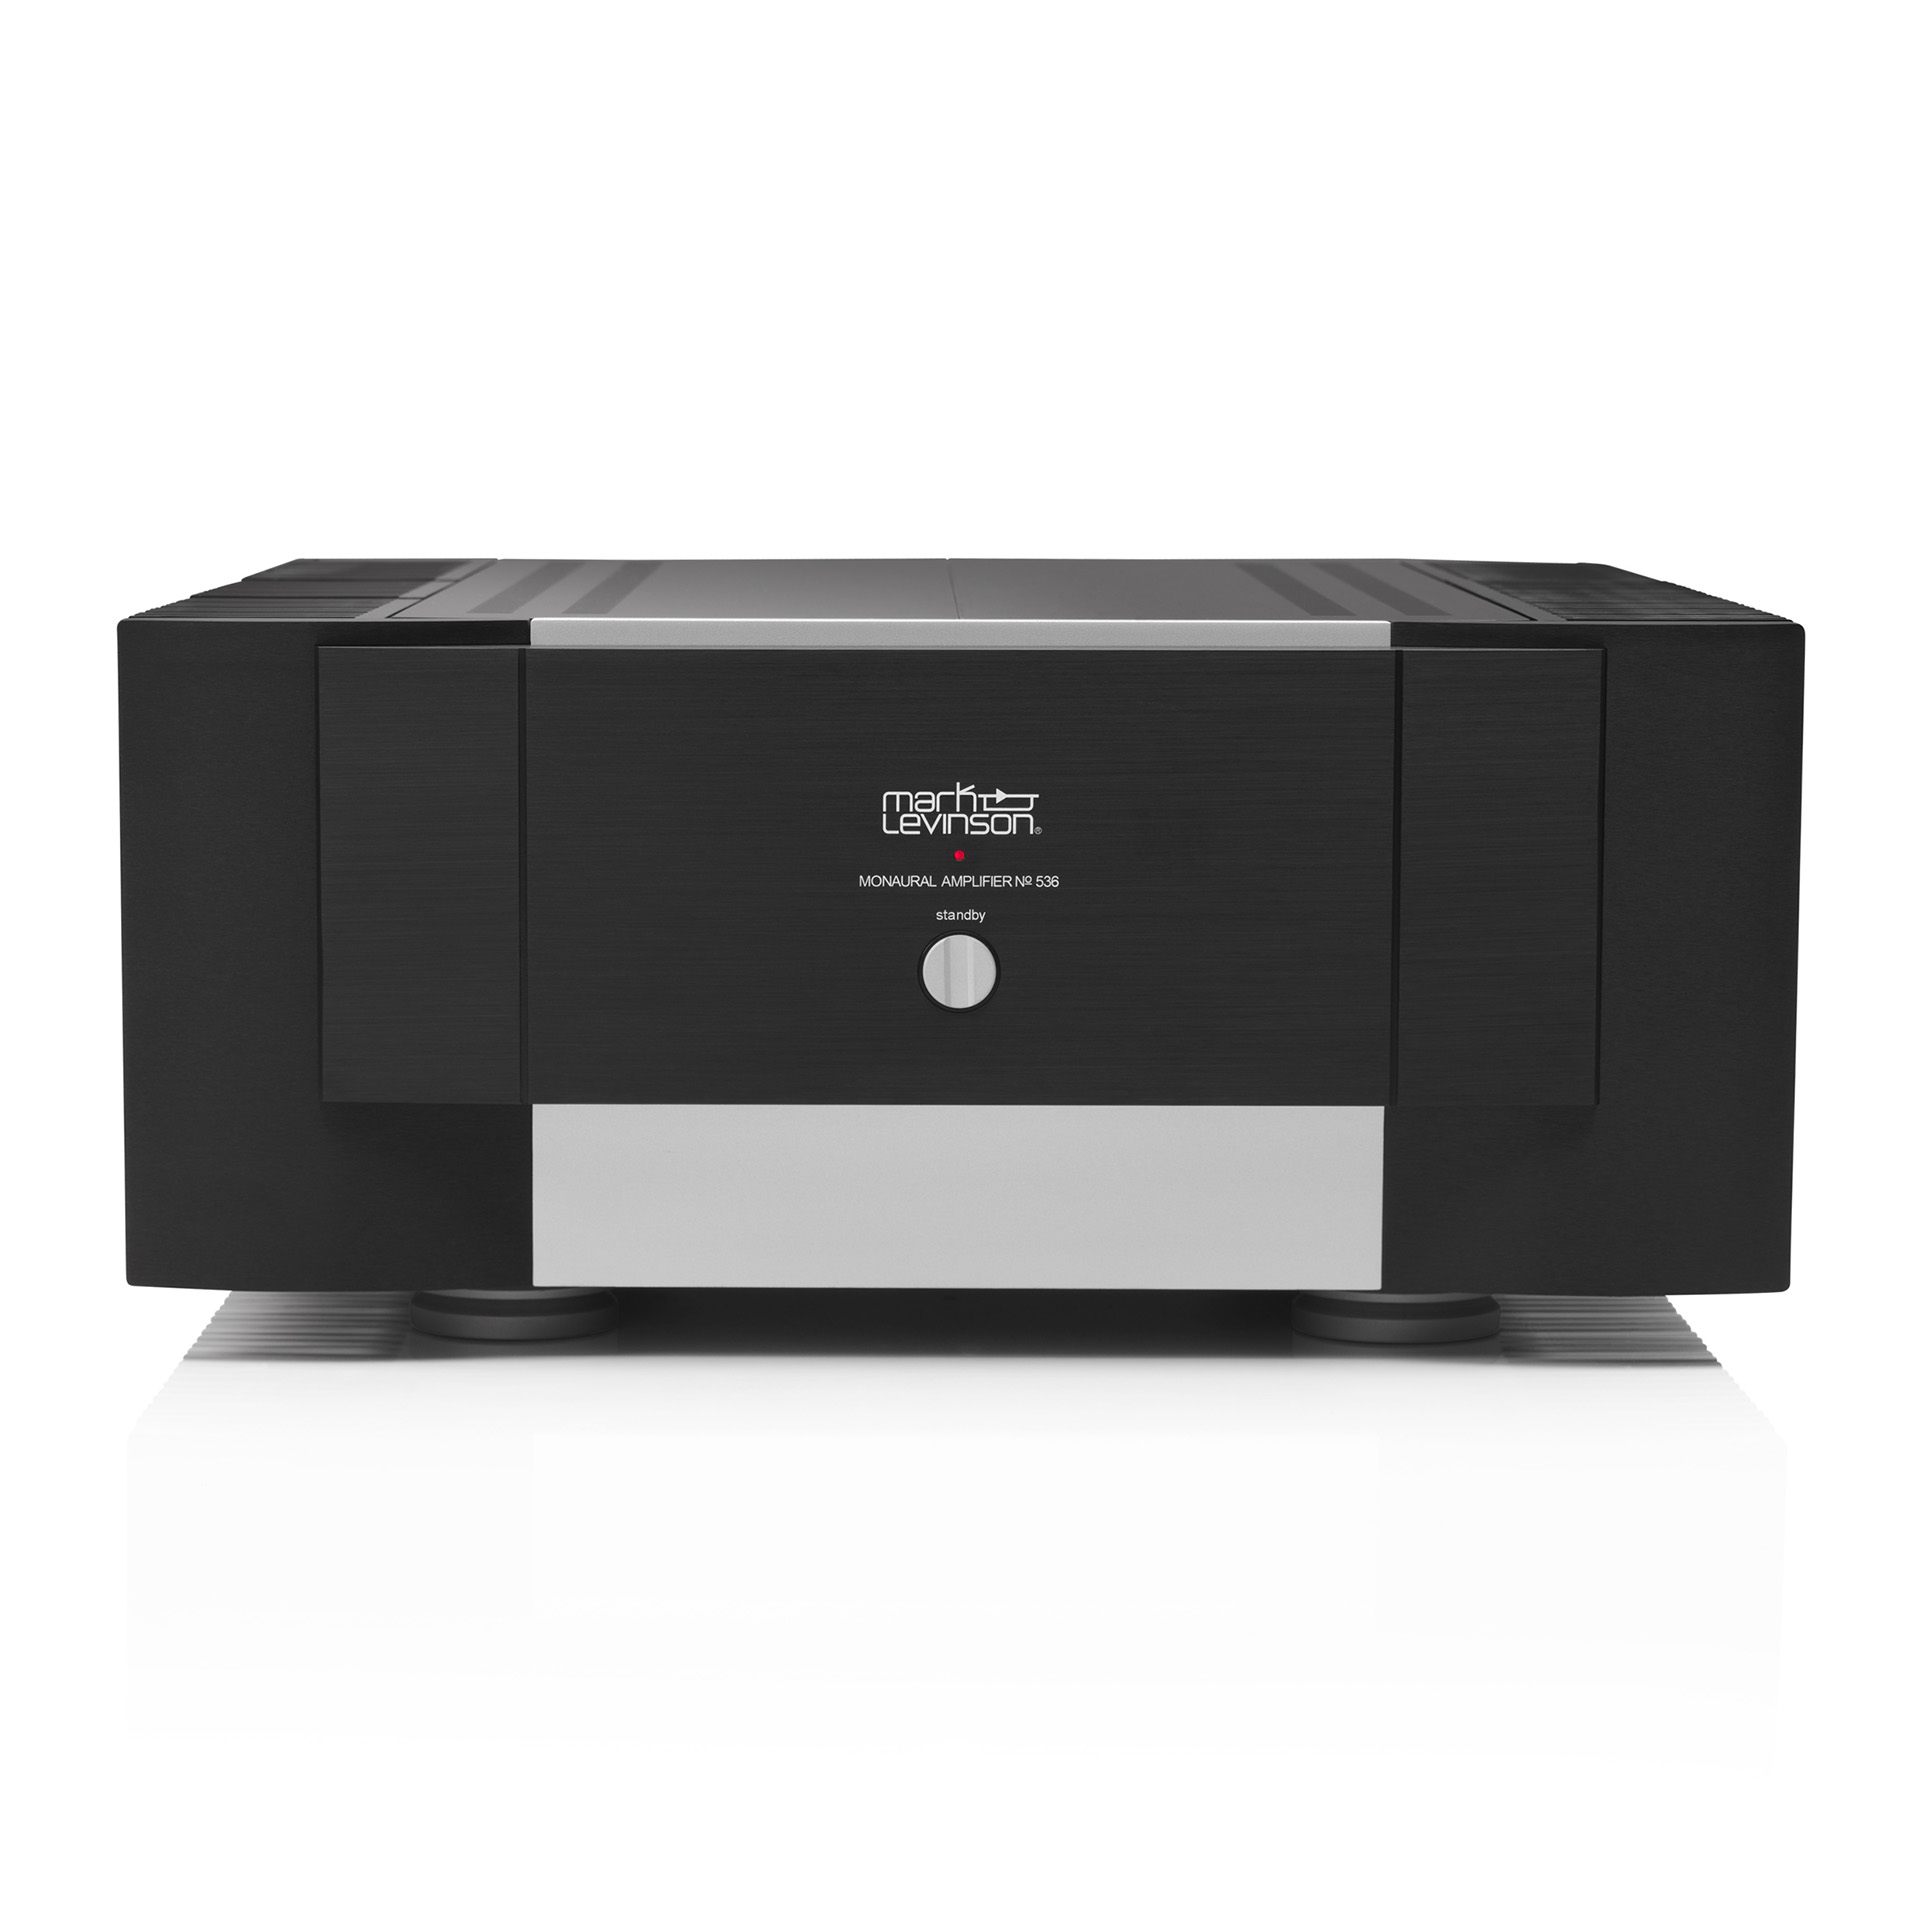 Harman_ML No.536 - Chattelin Audio Systems